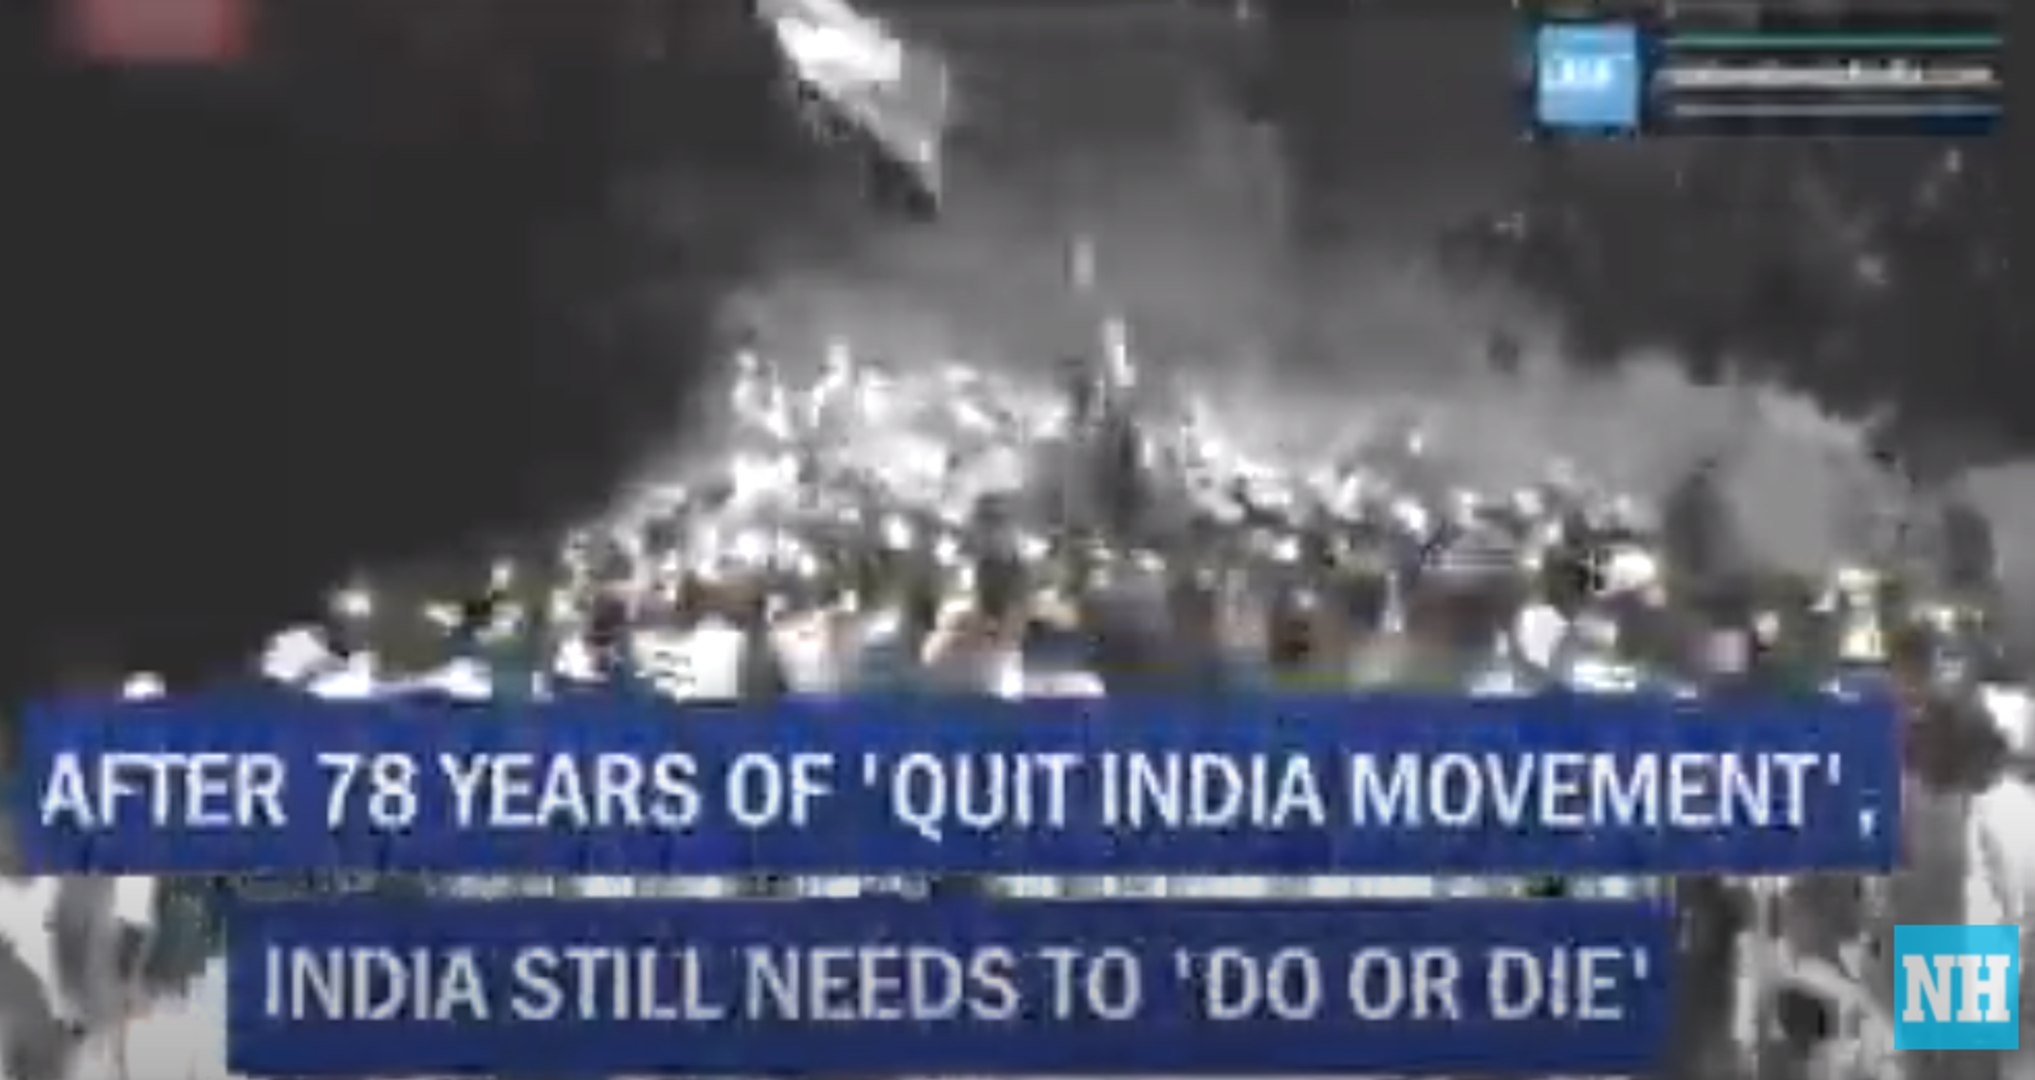 After 78 years of 'Quit India Movement', India still needs to 'Do or Die'